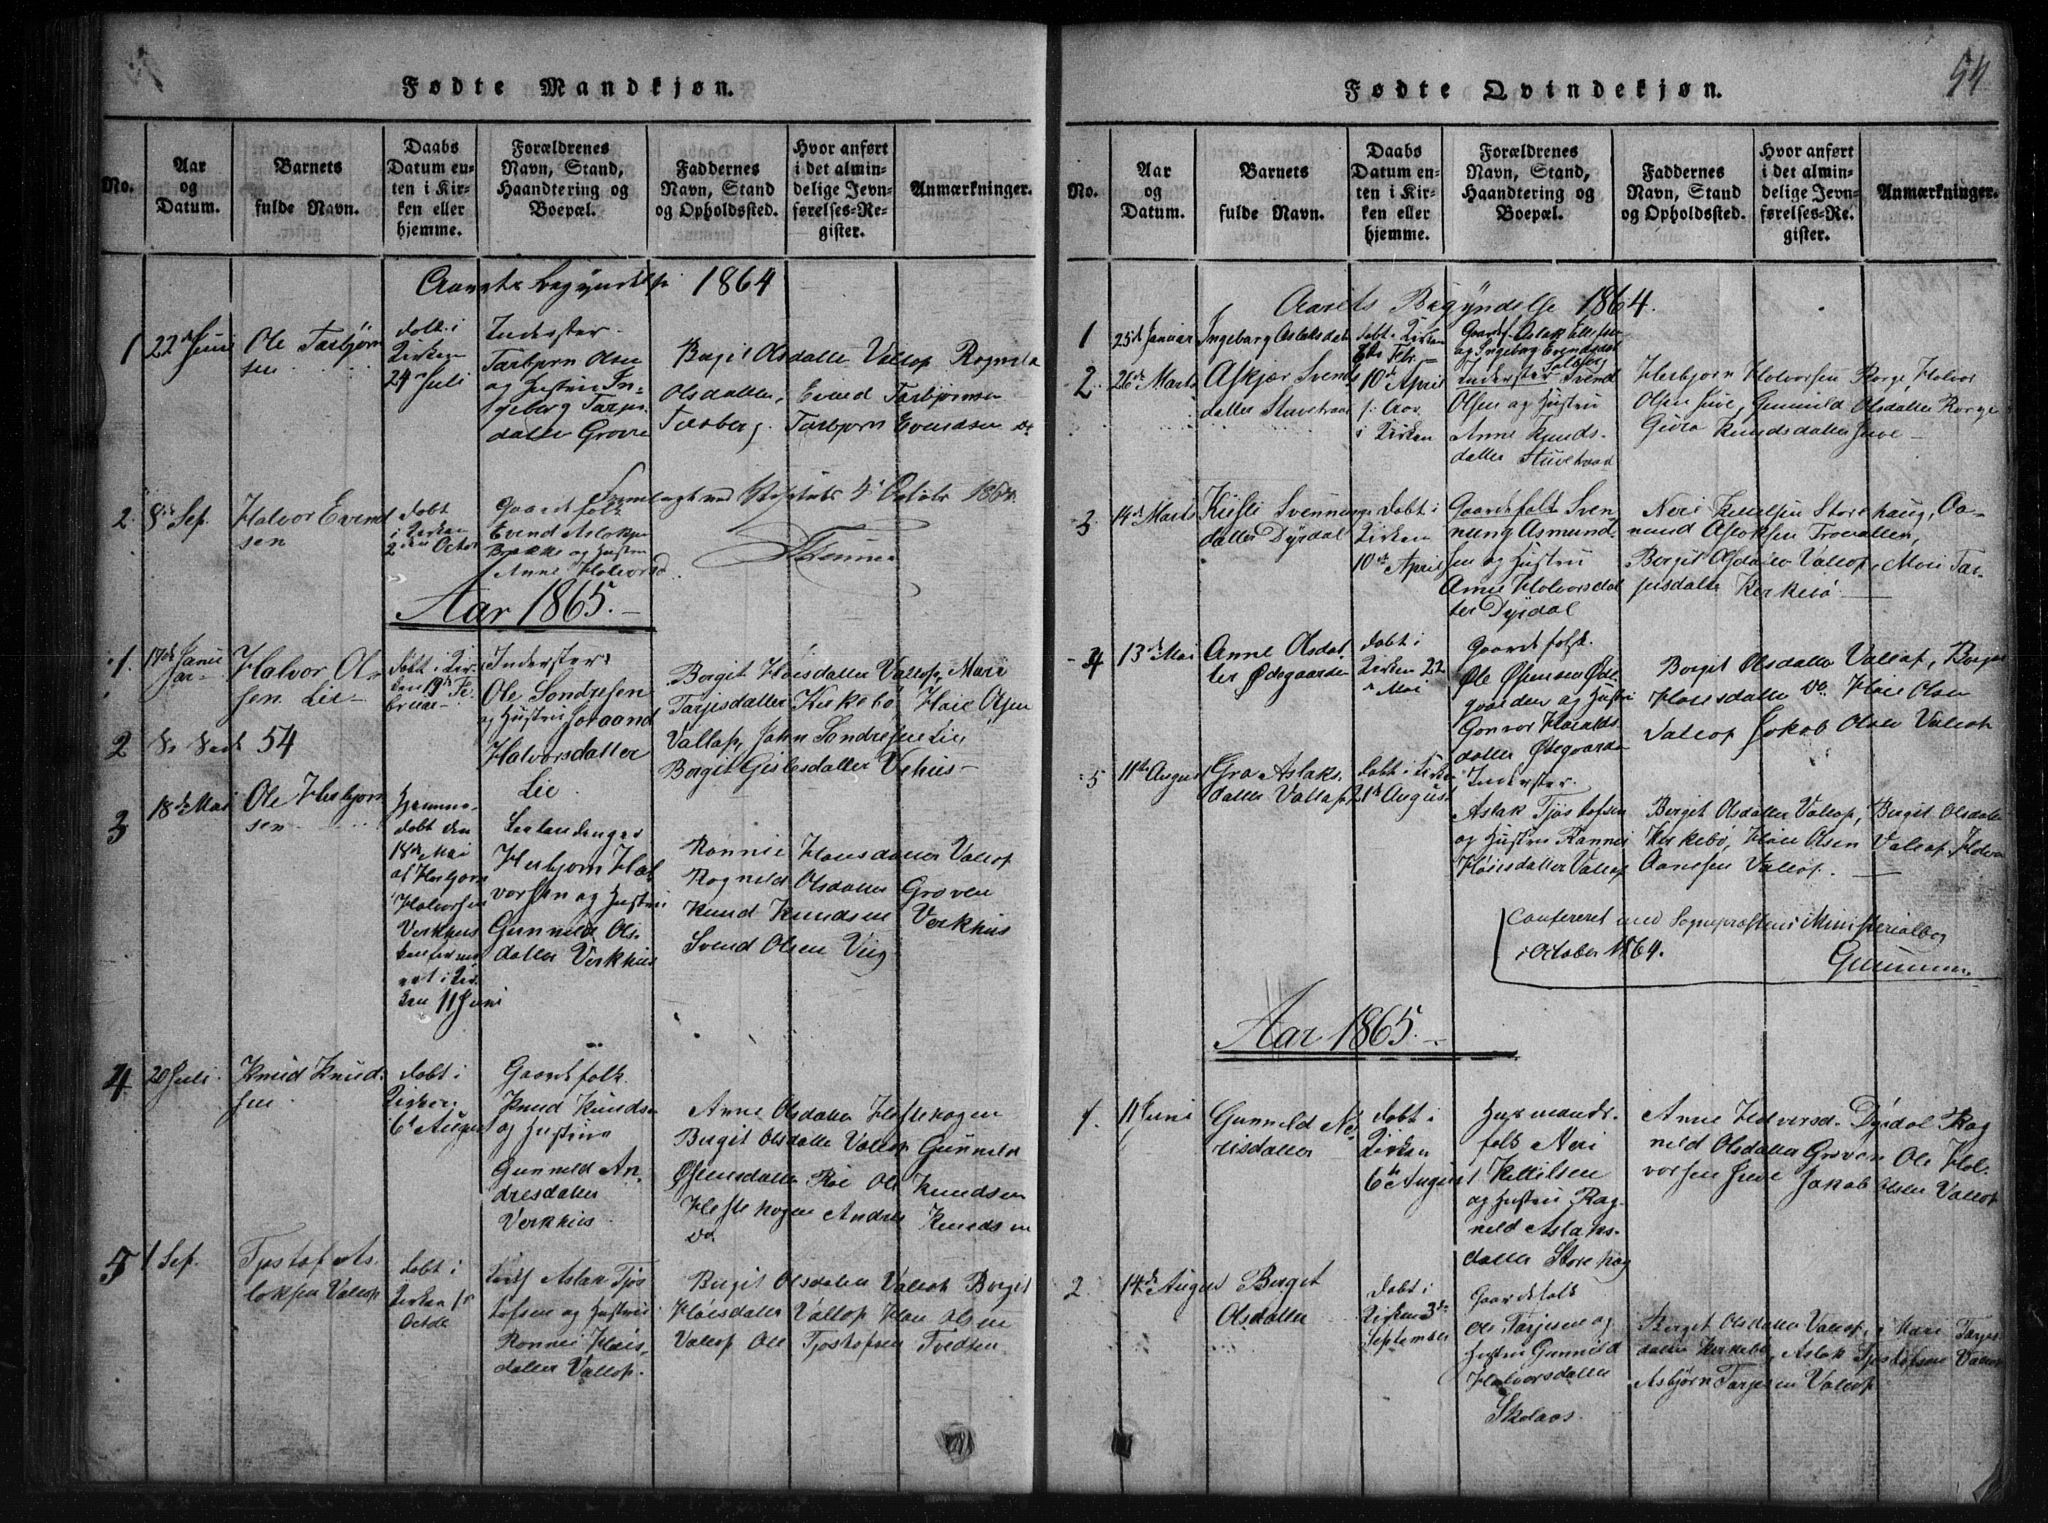 SAKO, Rauland kirkebøker, G/Gb/L0001: Parish register (copy) no. II 1, 1815-1886, p. 54